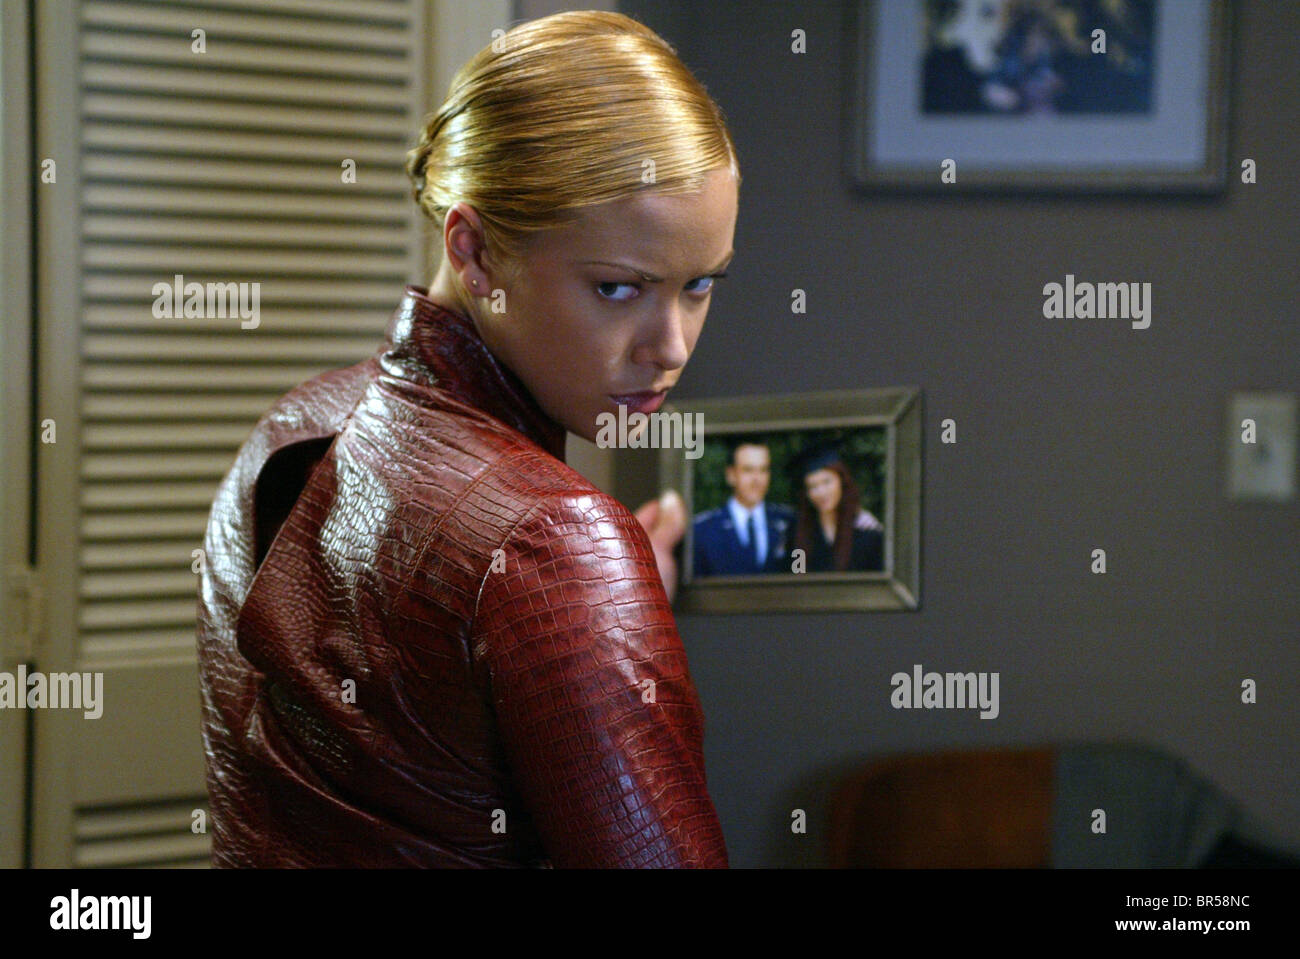 """PART 2 - CONTINUED: America Warned Is Unprepared For Q & Trump's Cataclysmic Destruction Of """"Deep State"""" - Page 23 Kristanna-loken-terminator-3-rise-of-the-machines-2003-BR58NC"""